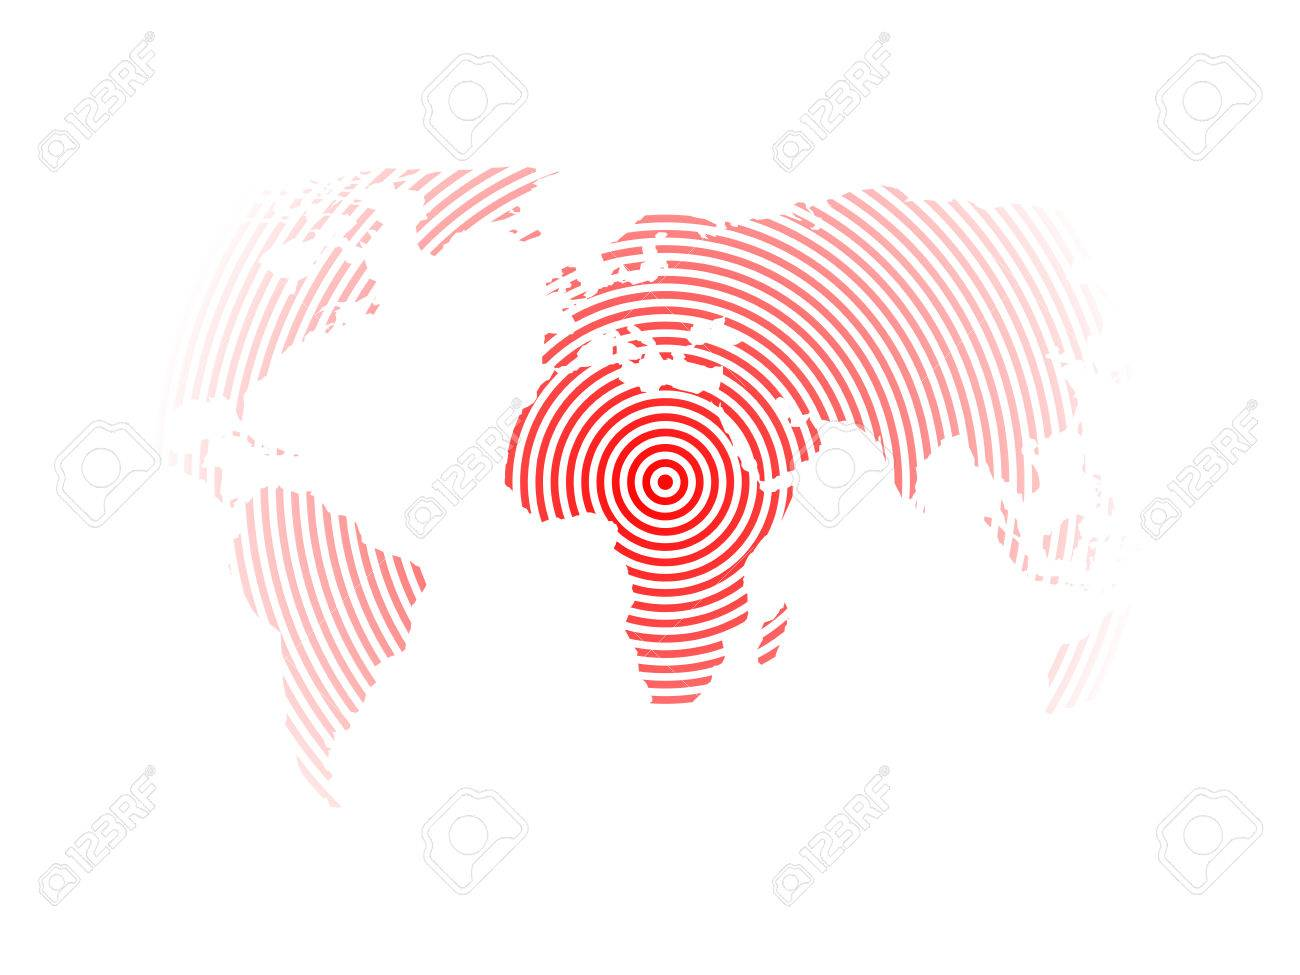 Modern Design World Map. World map of red concentric rings on white background  Earthquake epicentre theme Modern design Map Of Red Concentric Rings On White Background